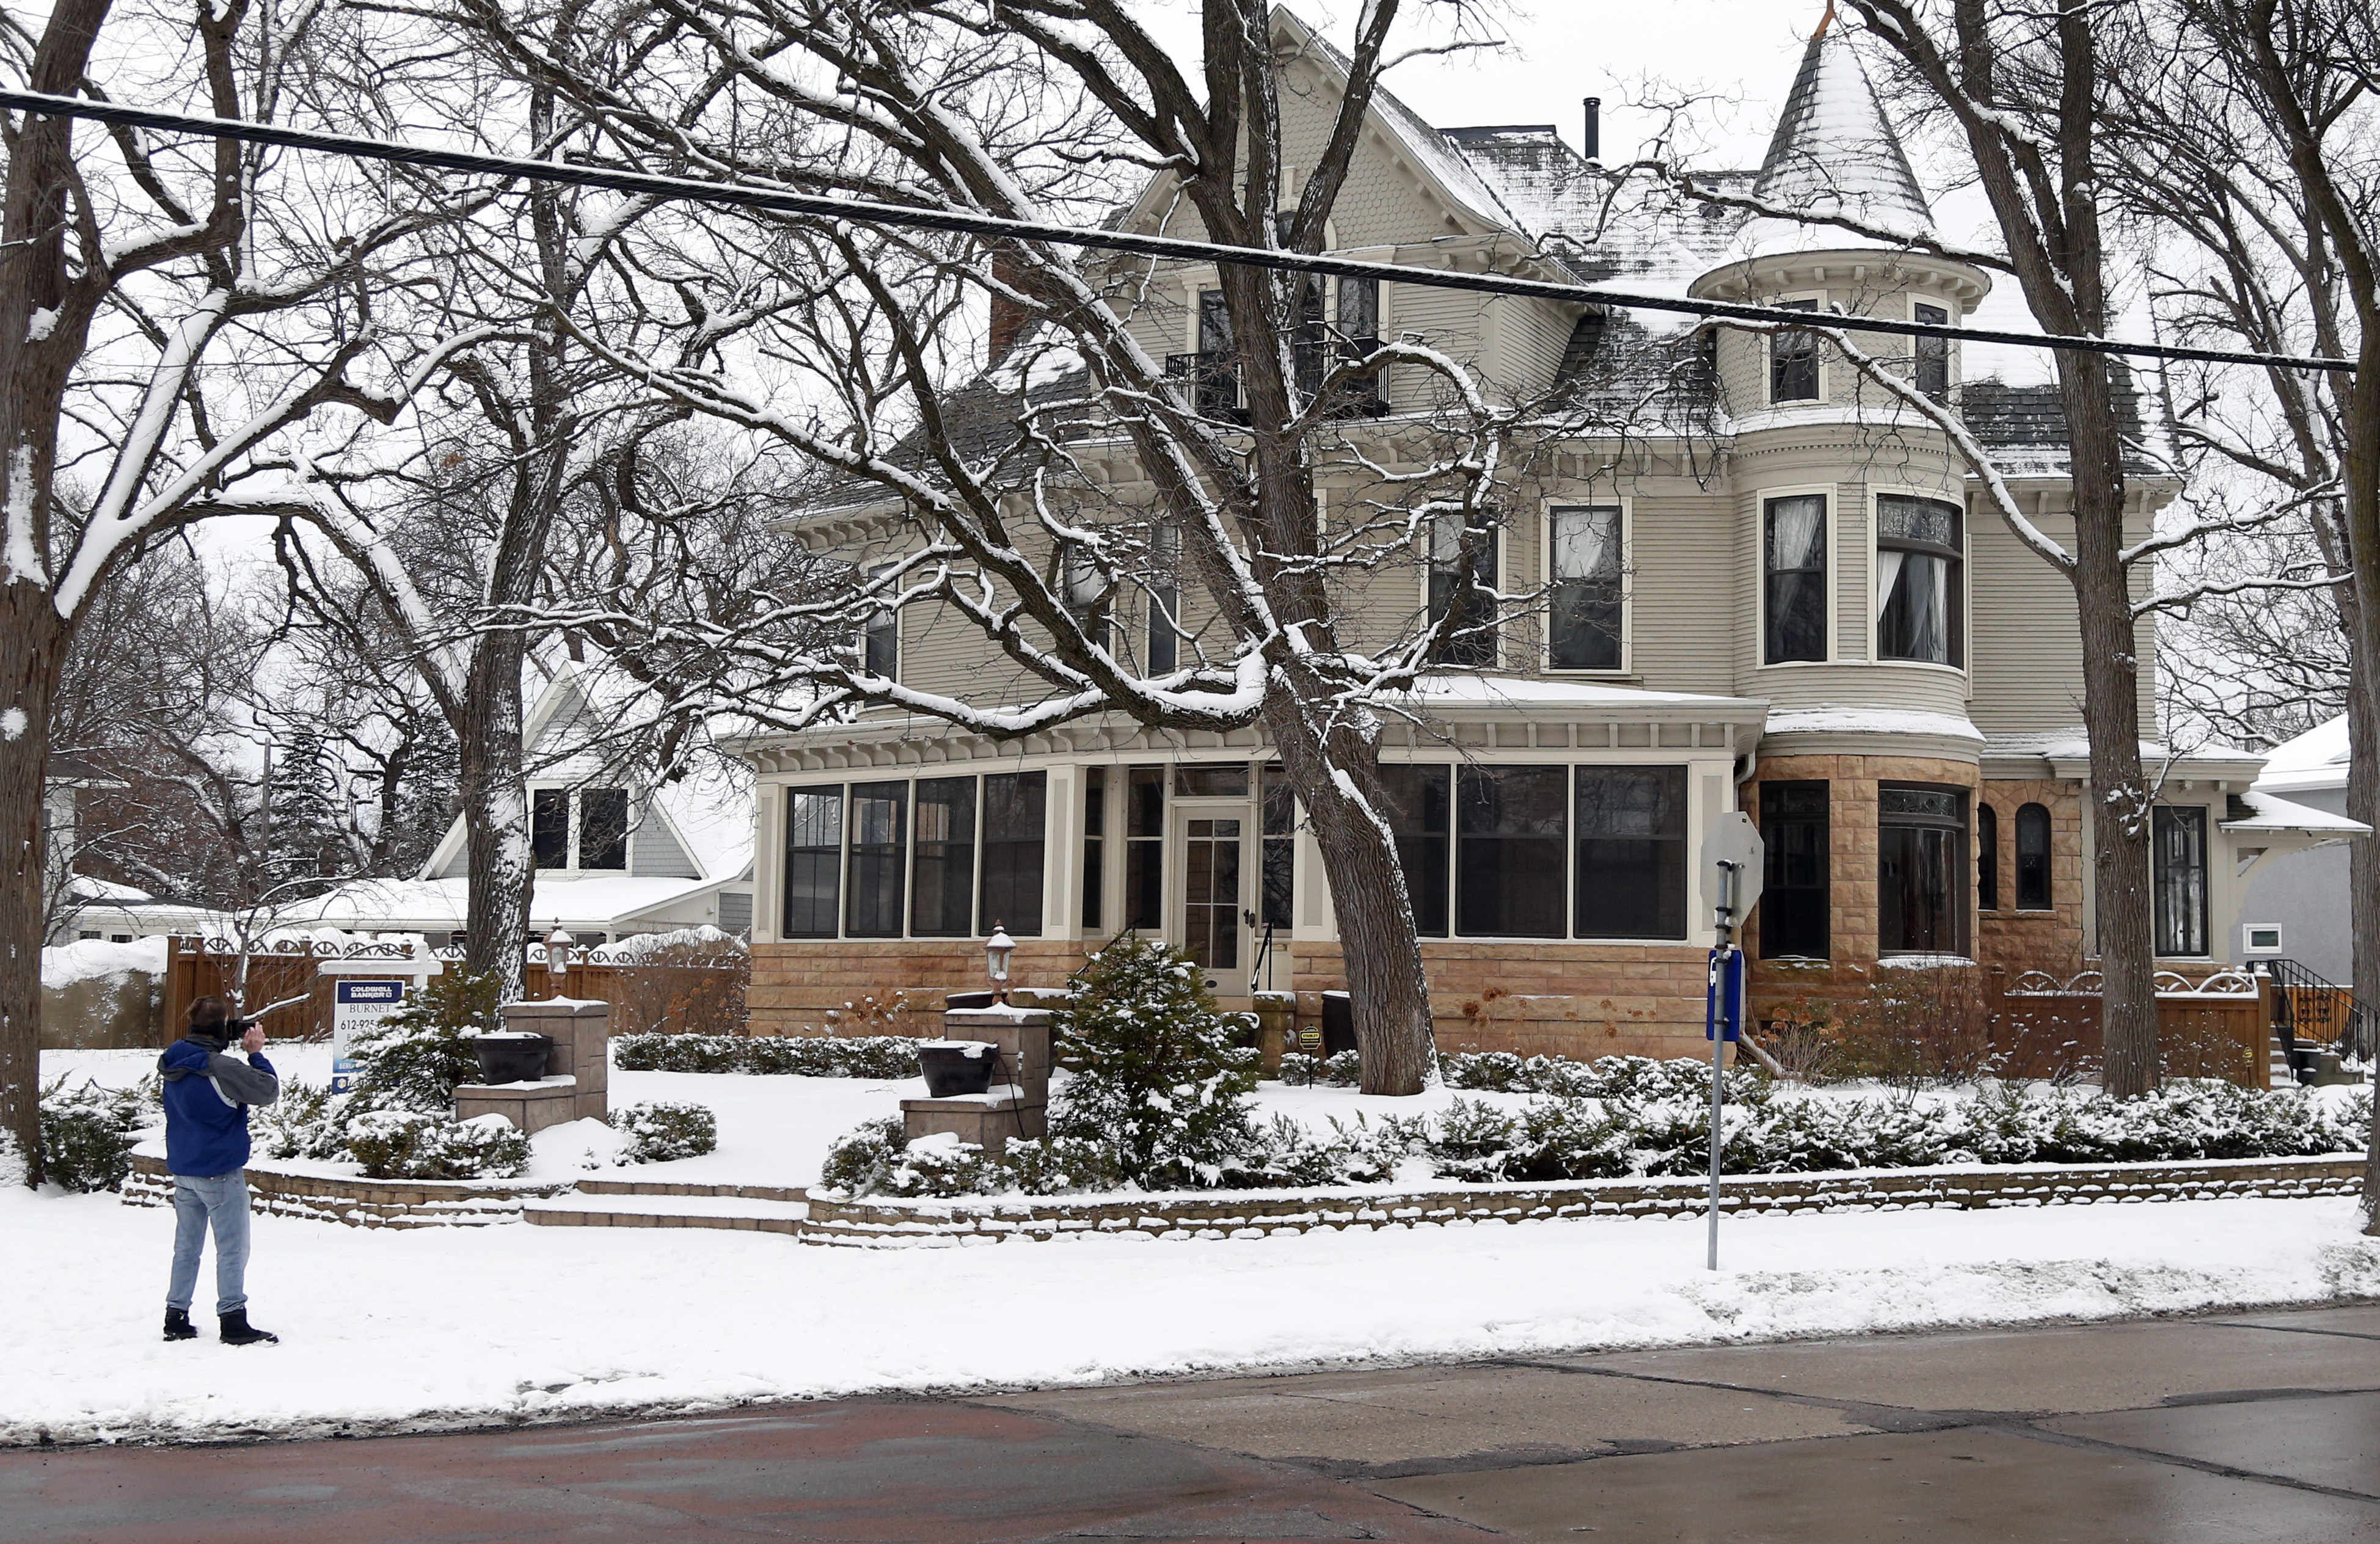 https www twincities com 2017 01 26 peer inside the mary tyler moore house which remains on sale for 1 695m